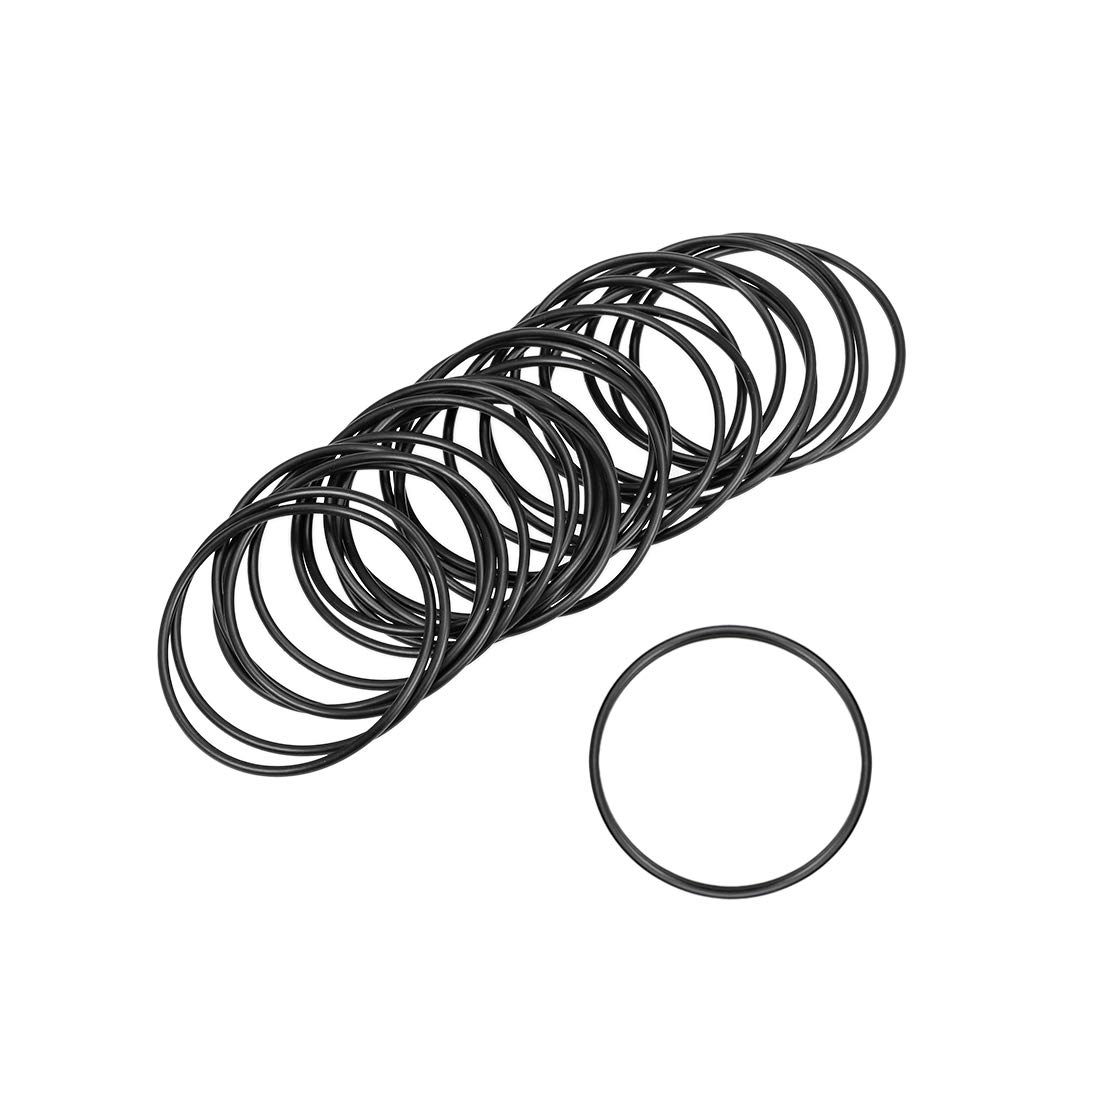 uxcell O-Rings Nitrile Rubber 23mm Inner Diameter 26mm OD 1.5mm Width Round Seal Gasket 25 Pcs